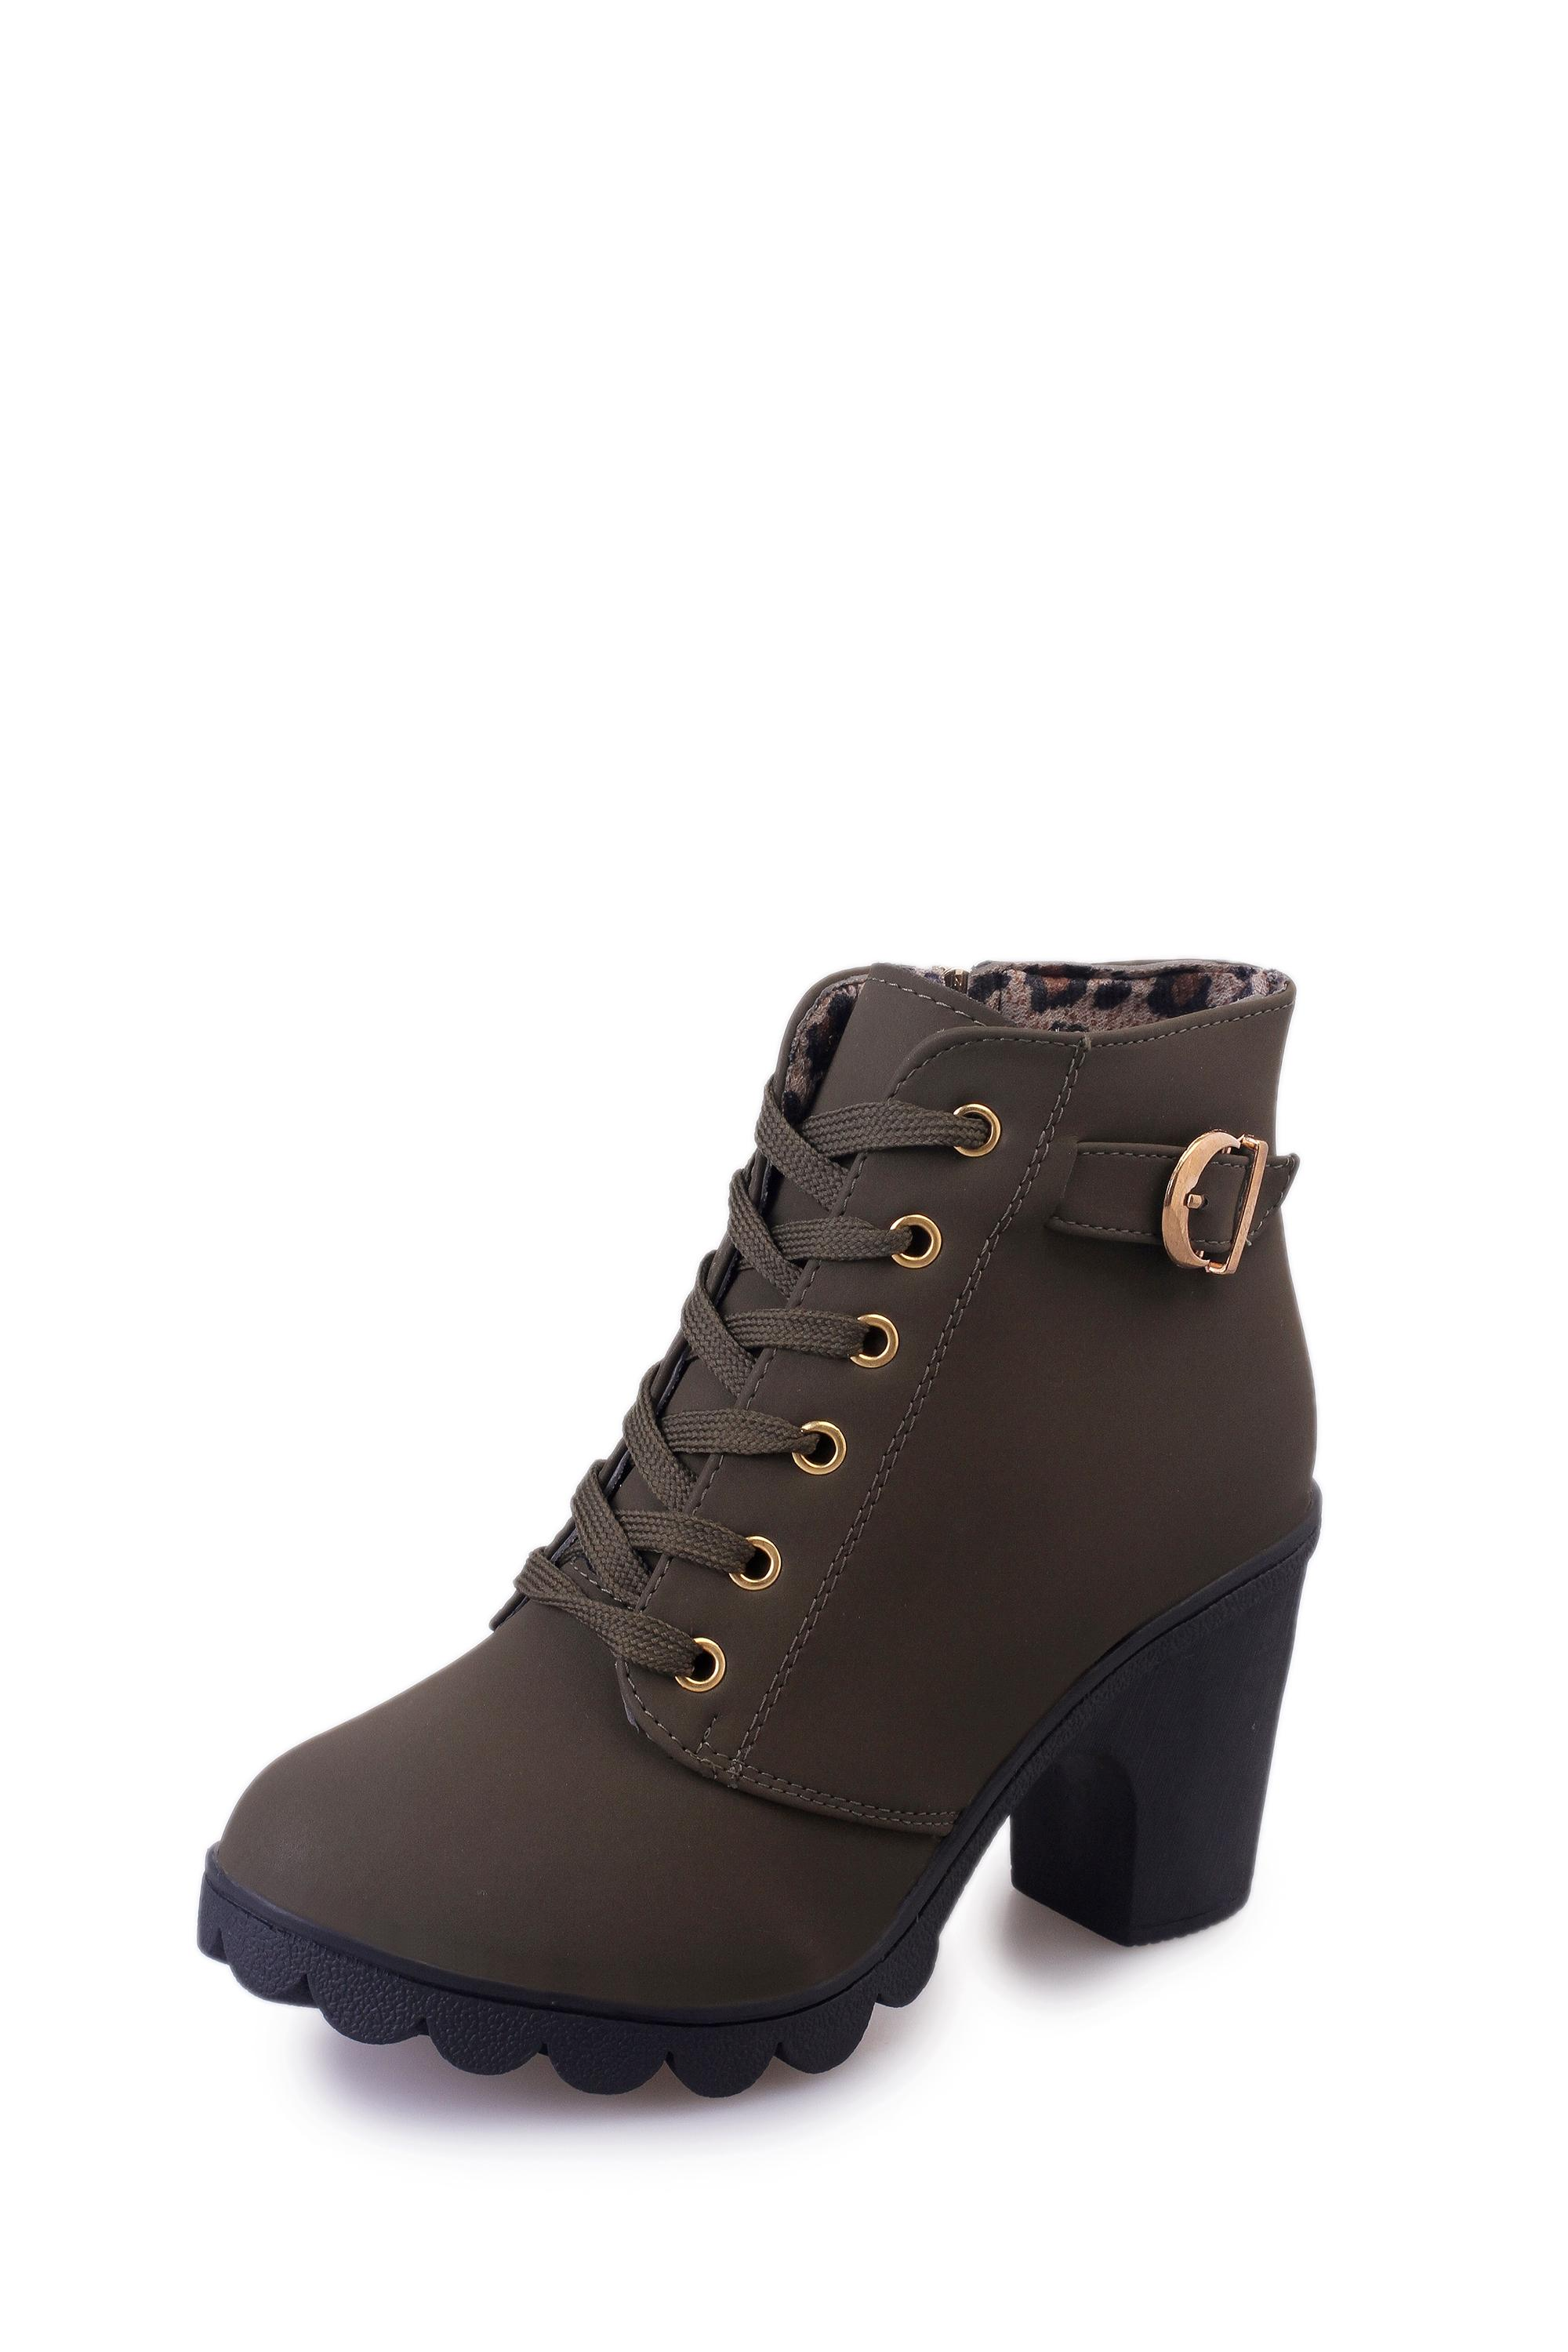 57968e019 Europe And America Spring And Autumn New Style High-Heel Martin Boots